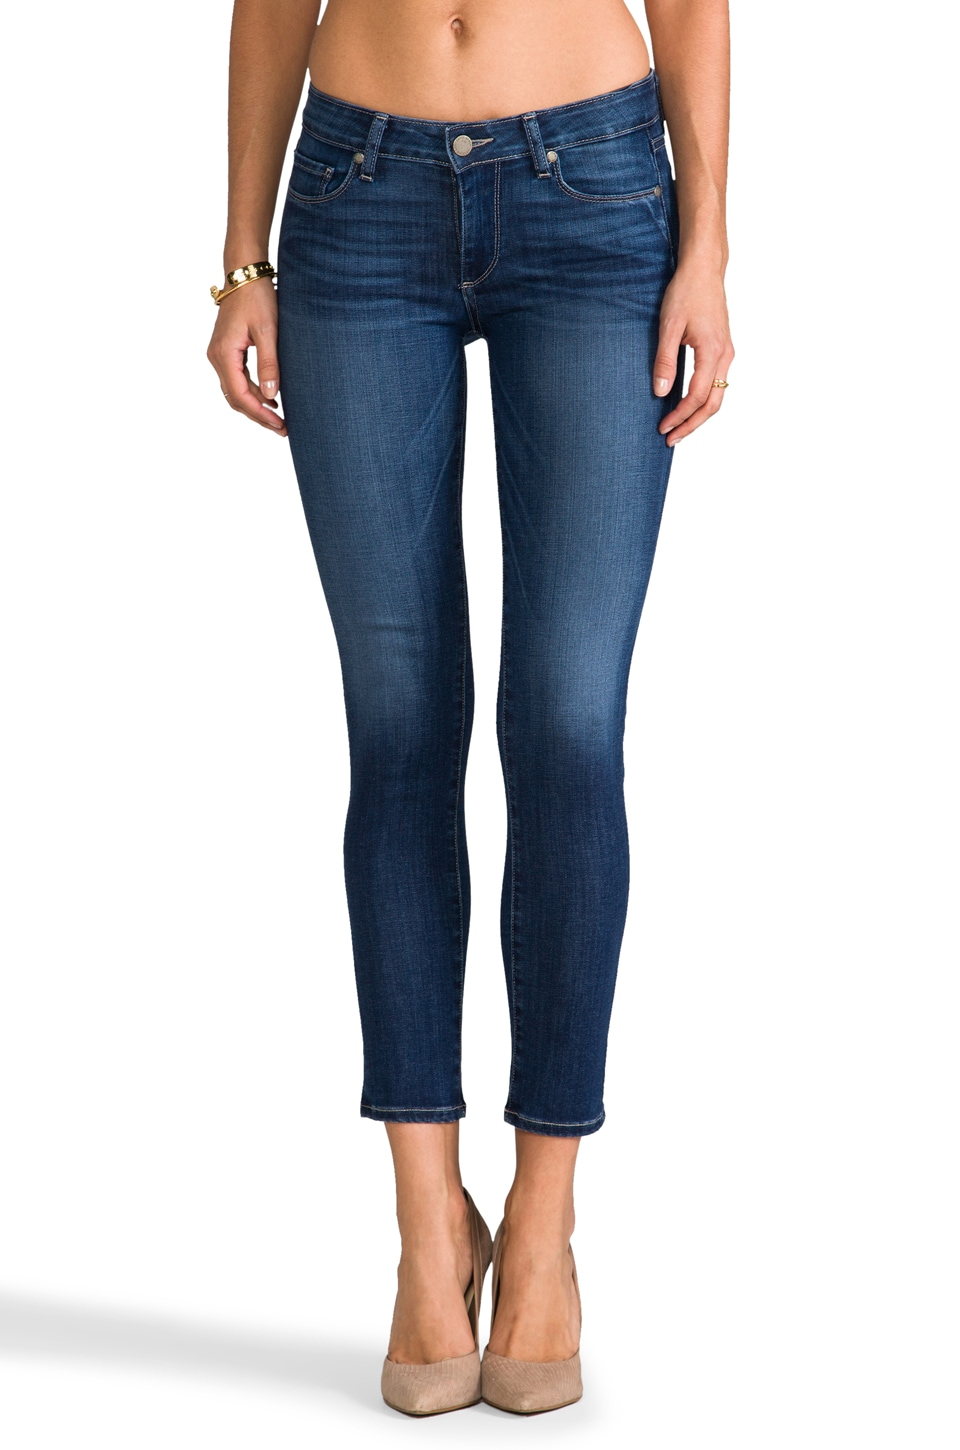 Paige Denim Skyline Ankle Peg in Reseda